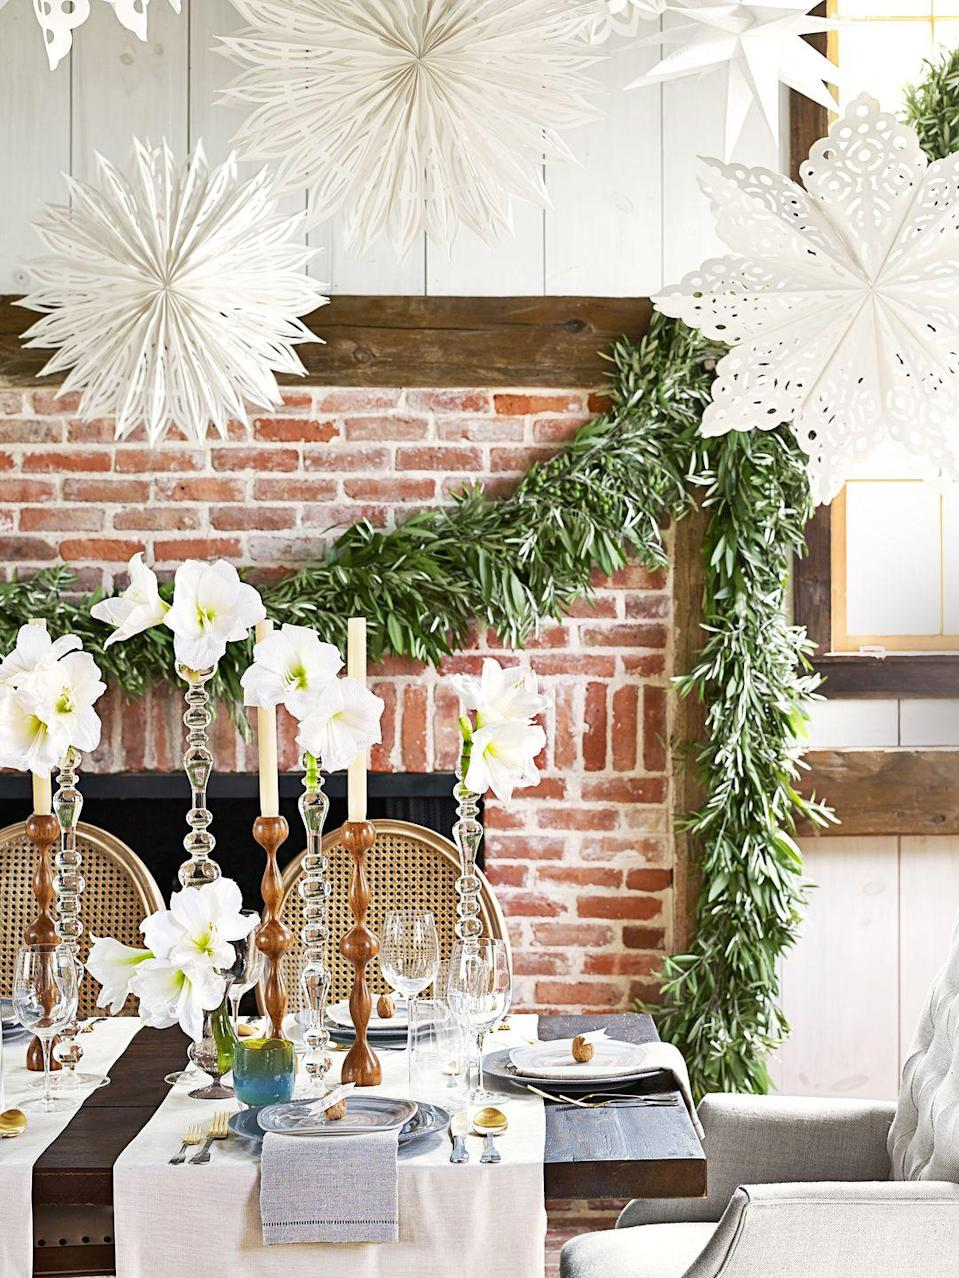 <p>There are pretty paper snowflakes and there are pretty paper snowflakes that also happen to be 3D. Hang them overhead near your holiday dinner table. For a complete winter wonderland atmosphere, stick to an all-white look with some fresh greenery sprinkled in.</p>